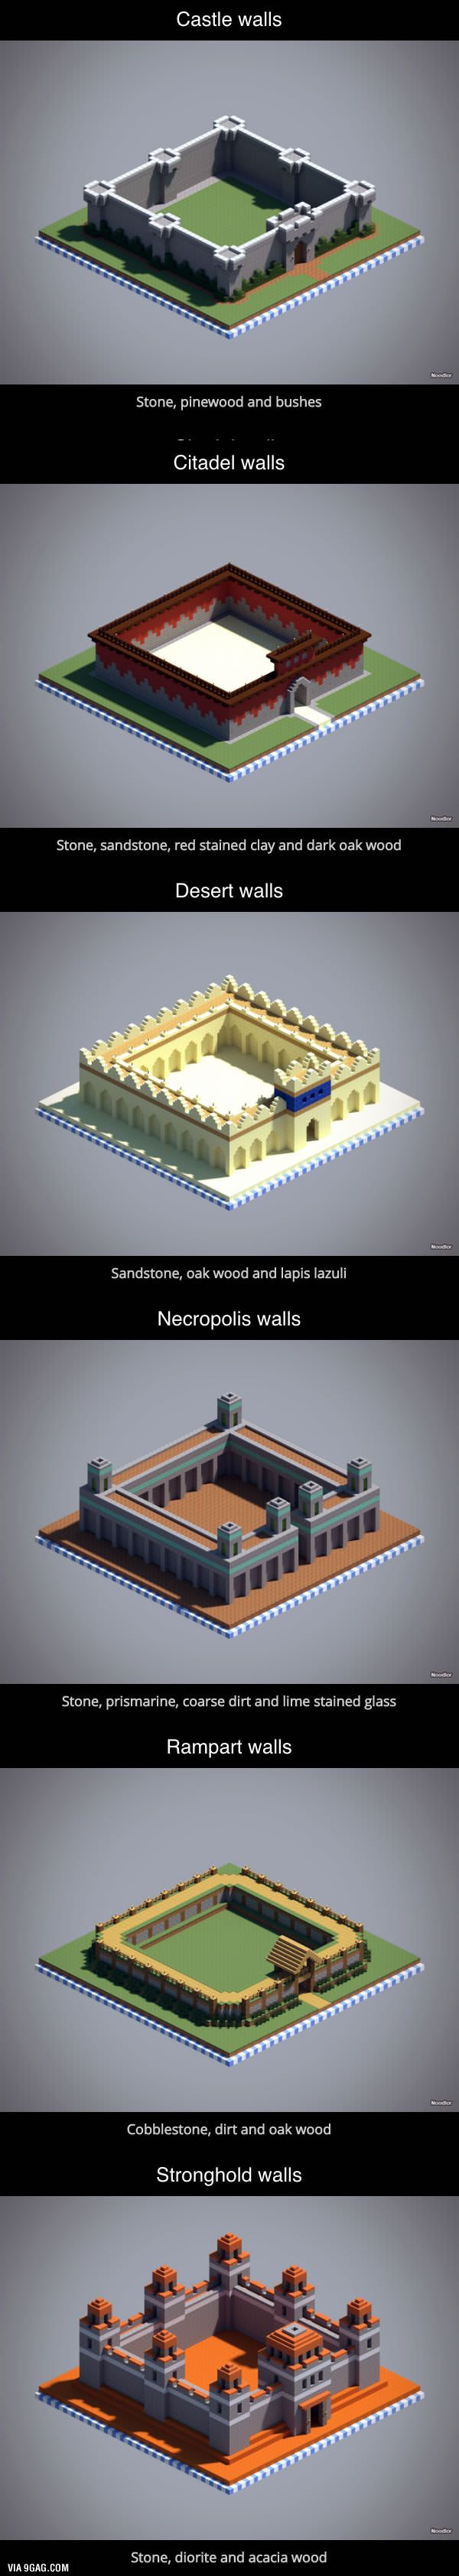 6 unique wall designs in Minecraft - 9GAG